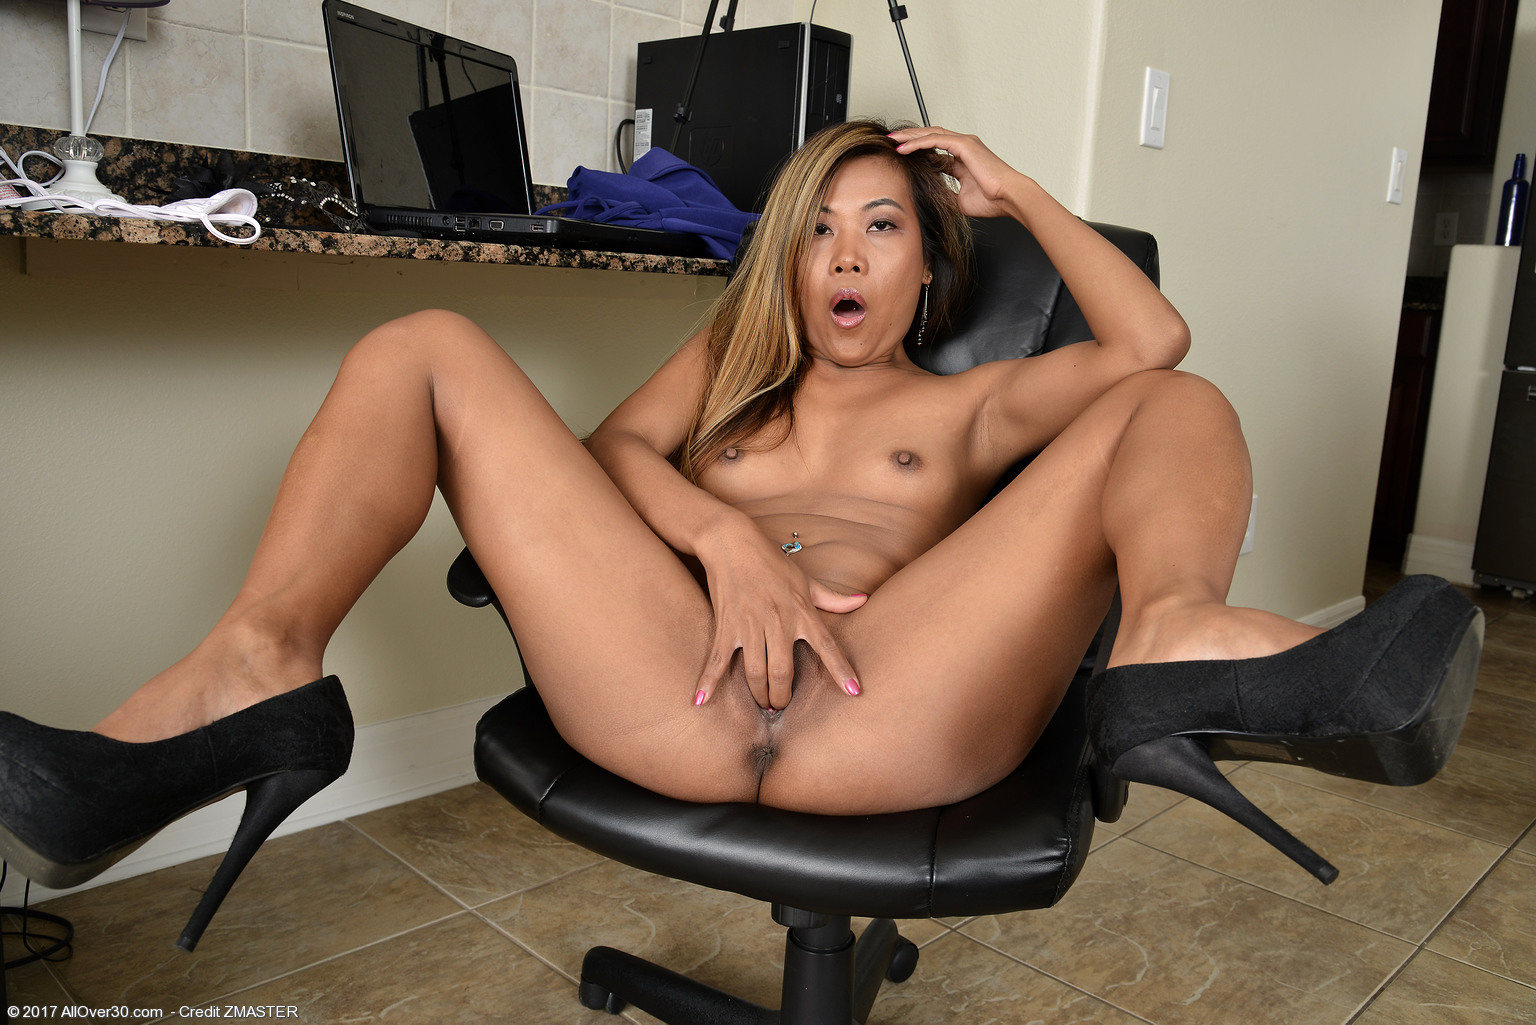 18 years old chanel rae gets fucked 10